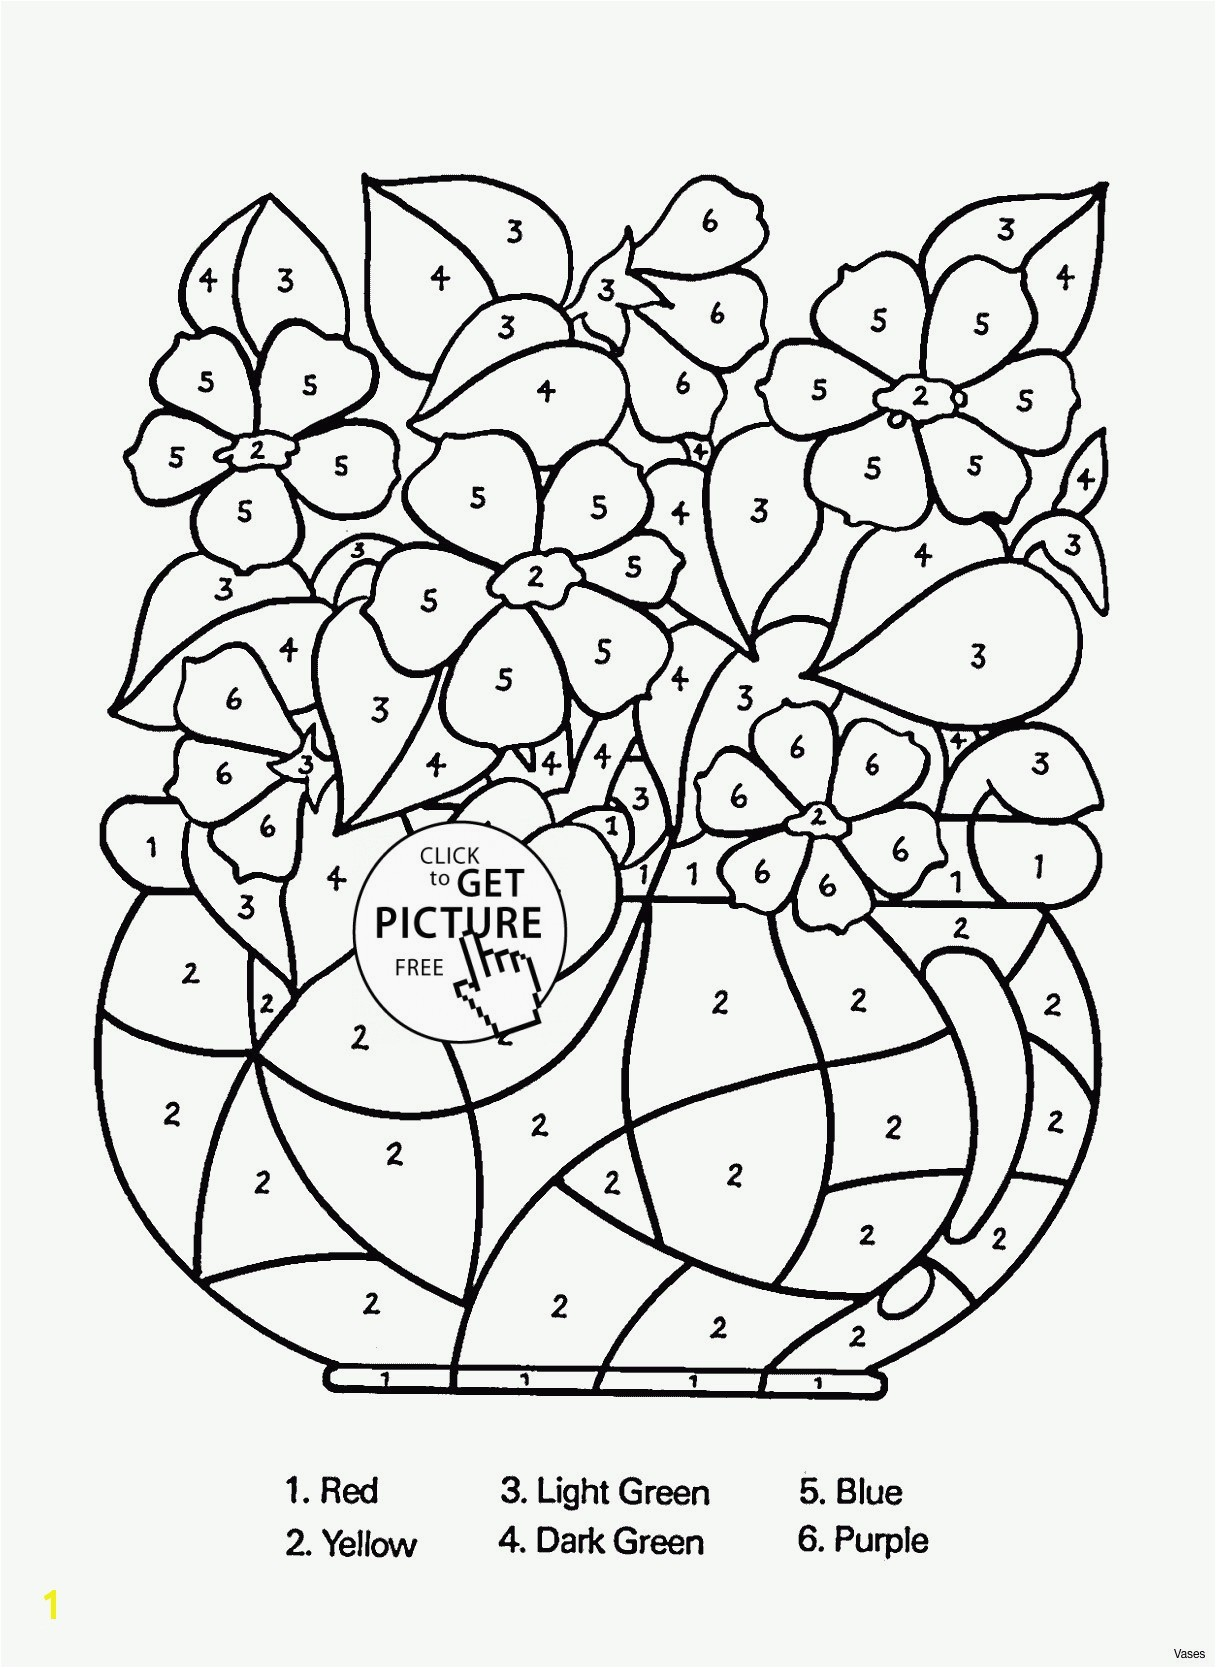 Coloring Pages Anything the Coloring Book New Line Coloring Book Lovely Coloring Pages Line